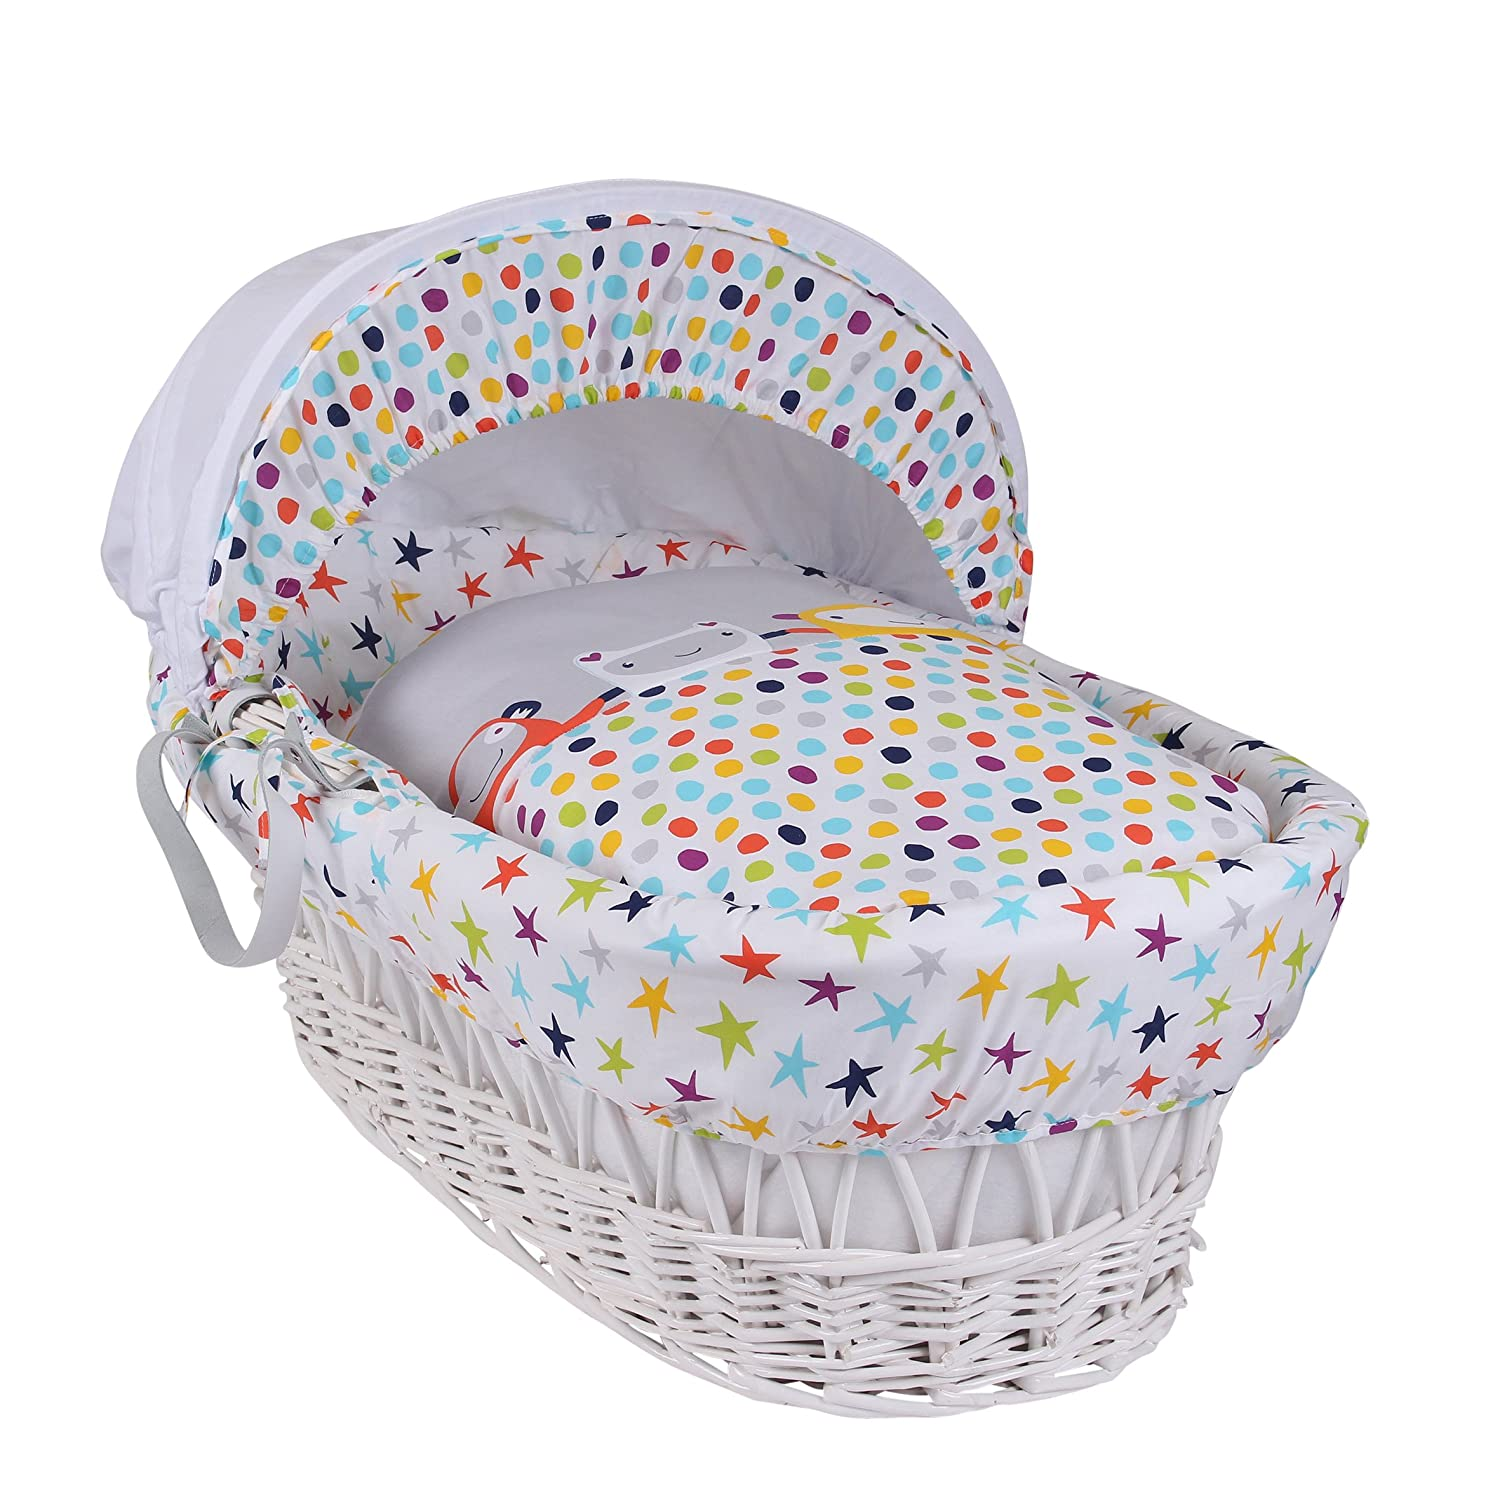 Clair de Lune The Dudes White Wicker Moses Basket inc. bedding, mattress & adjustable hood (Grey/Brights) CL5641W